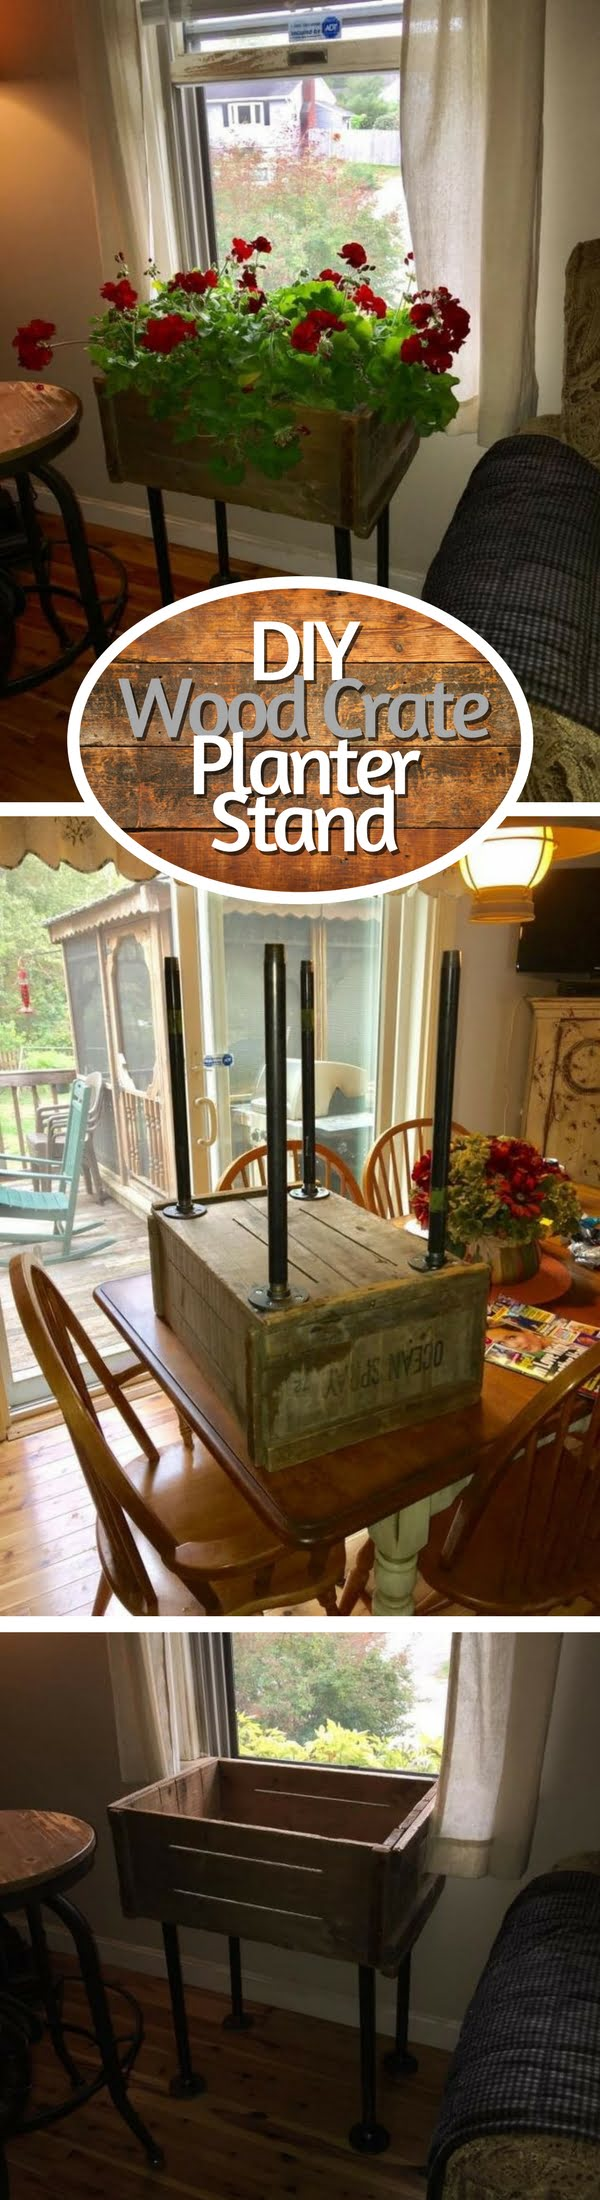 15 Brilliant DIY Crafts You Can Make with Wood Crates - Check out how to make a DIY planter stand from wood crate